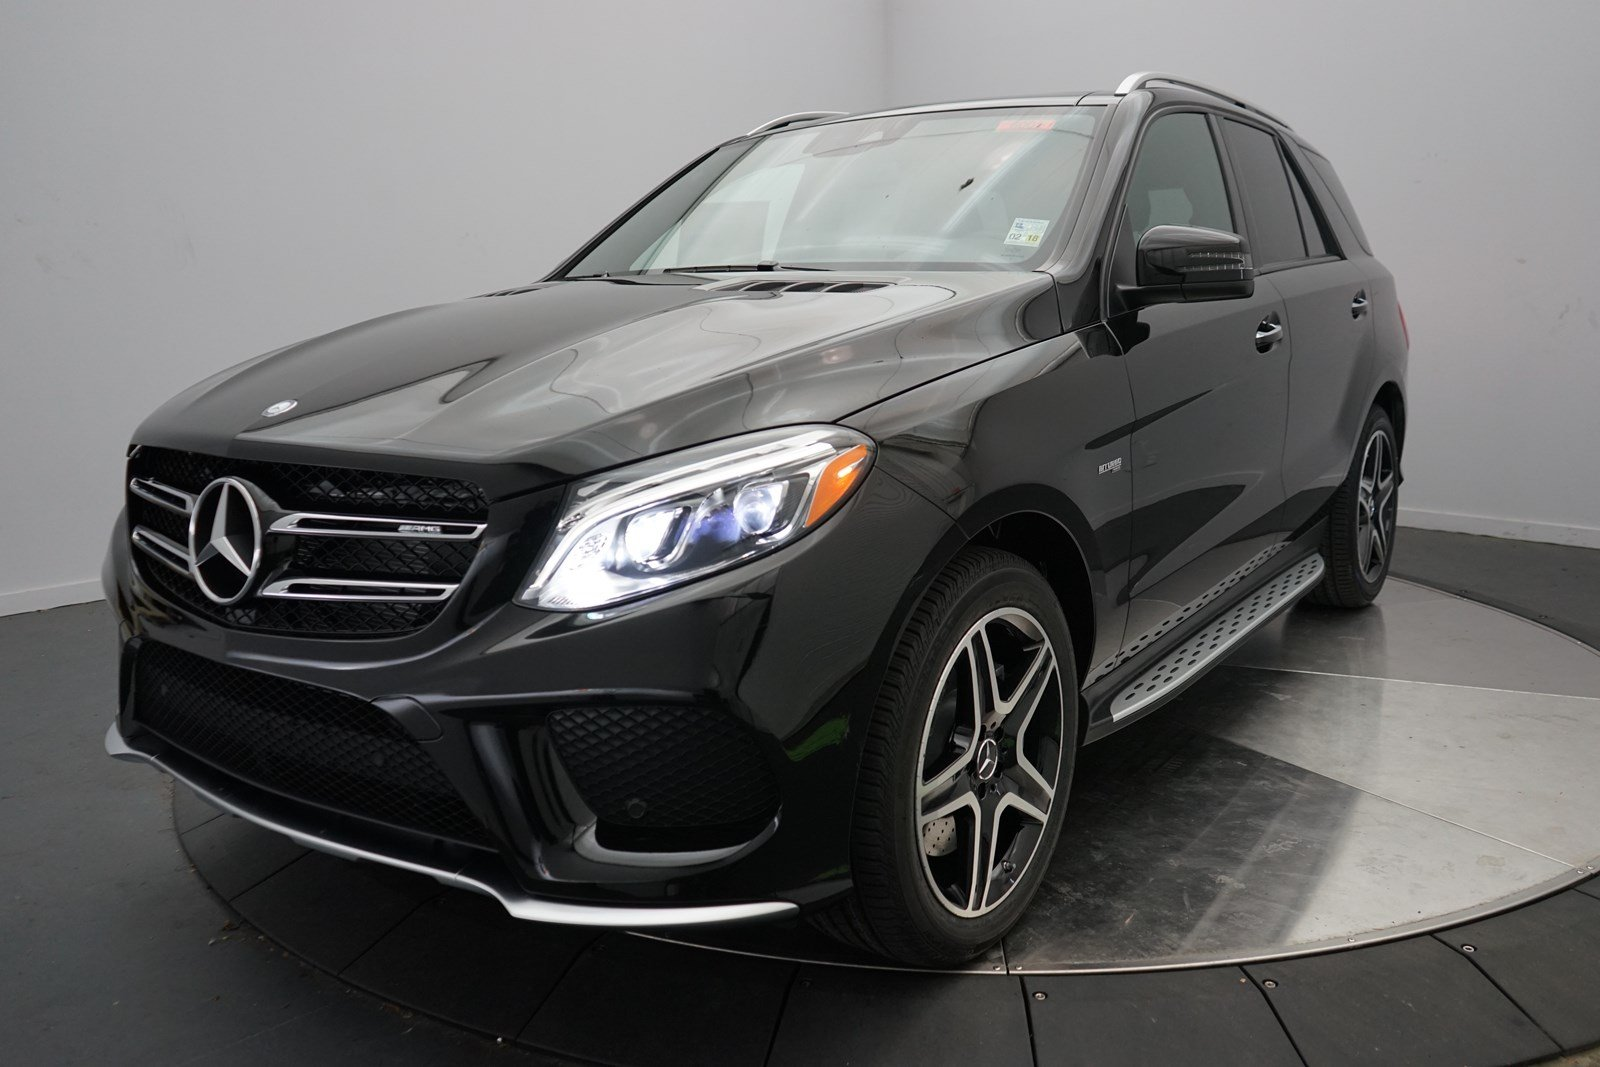 New 2017 mercedes benz gle gle 43 amg suv suv in for 2017 mercedes benz gle